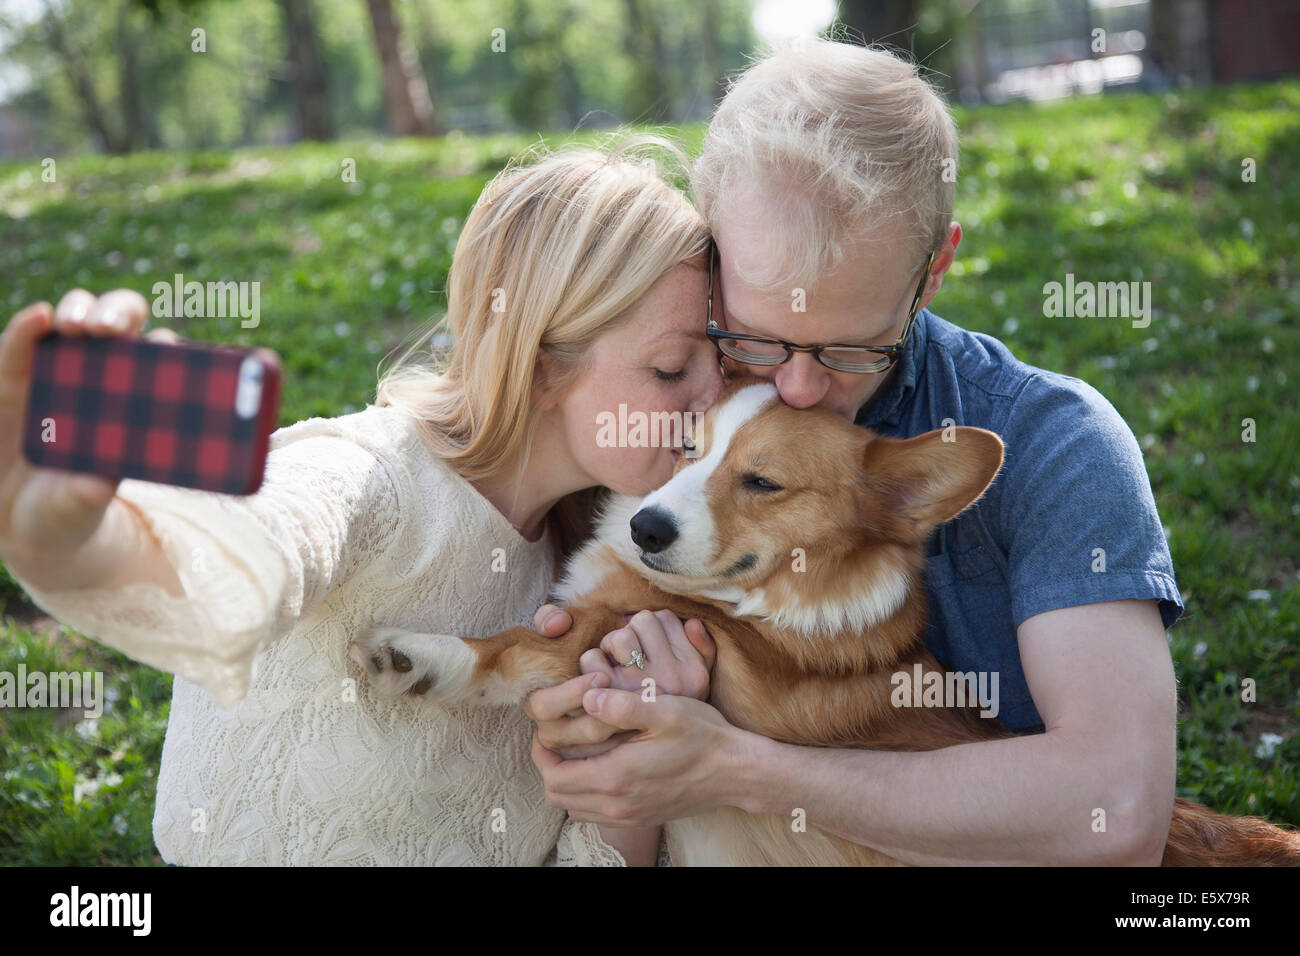 Young couple in park taking selfie whilst kissing corgi dog - Stock Image